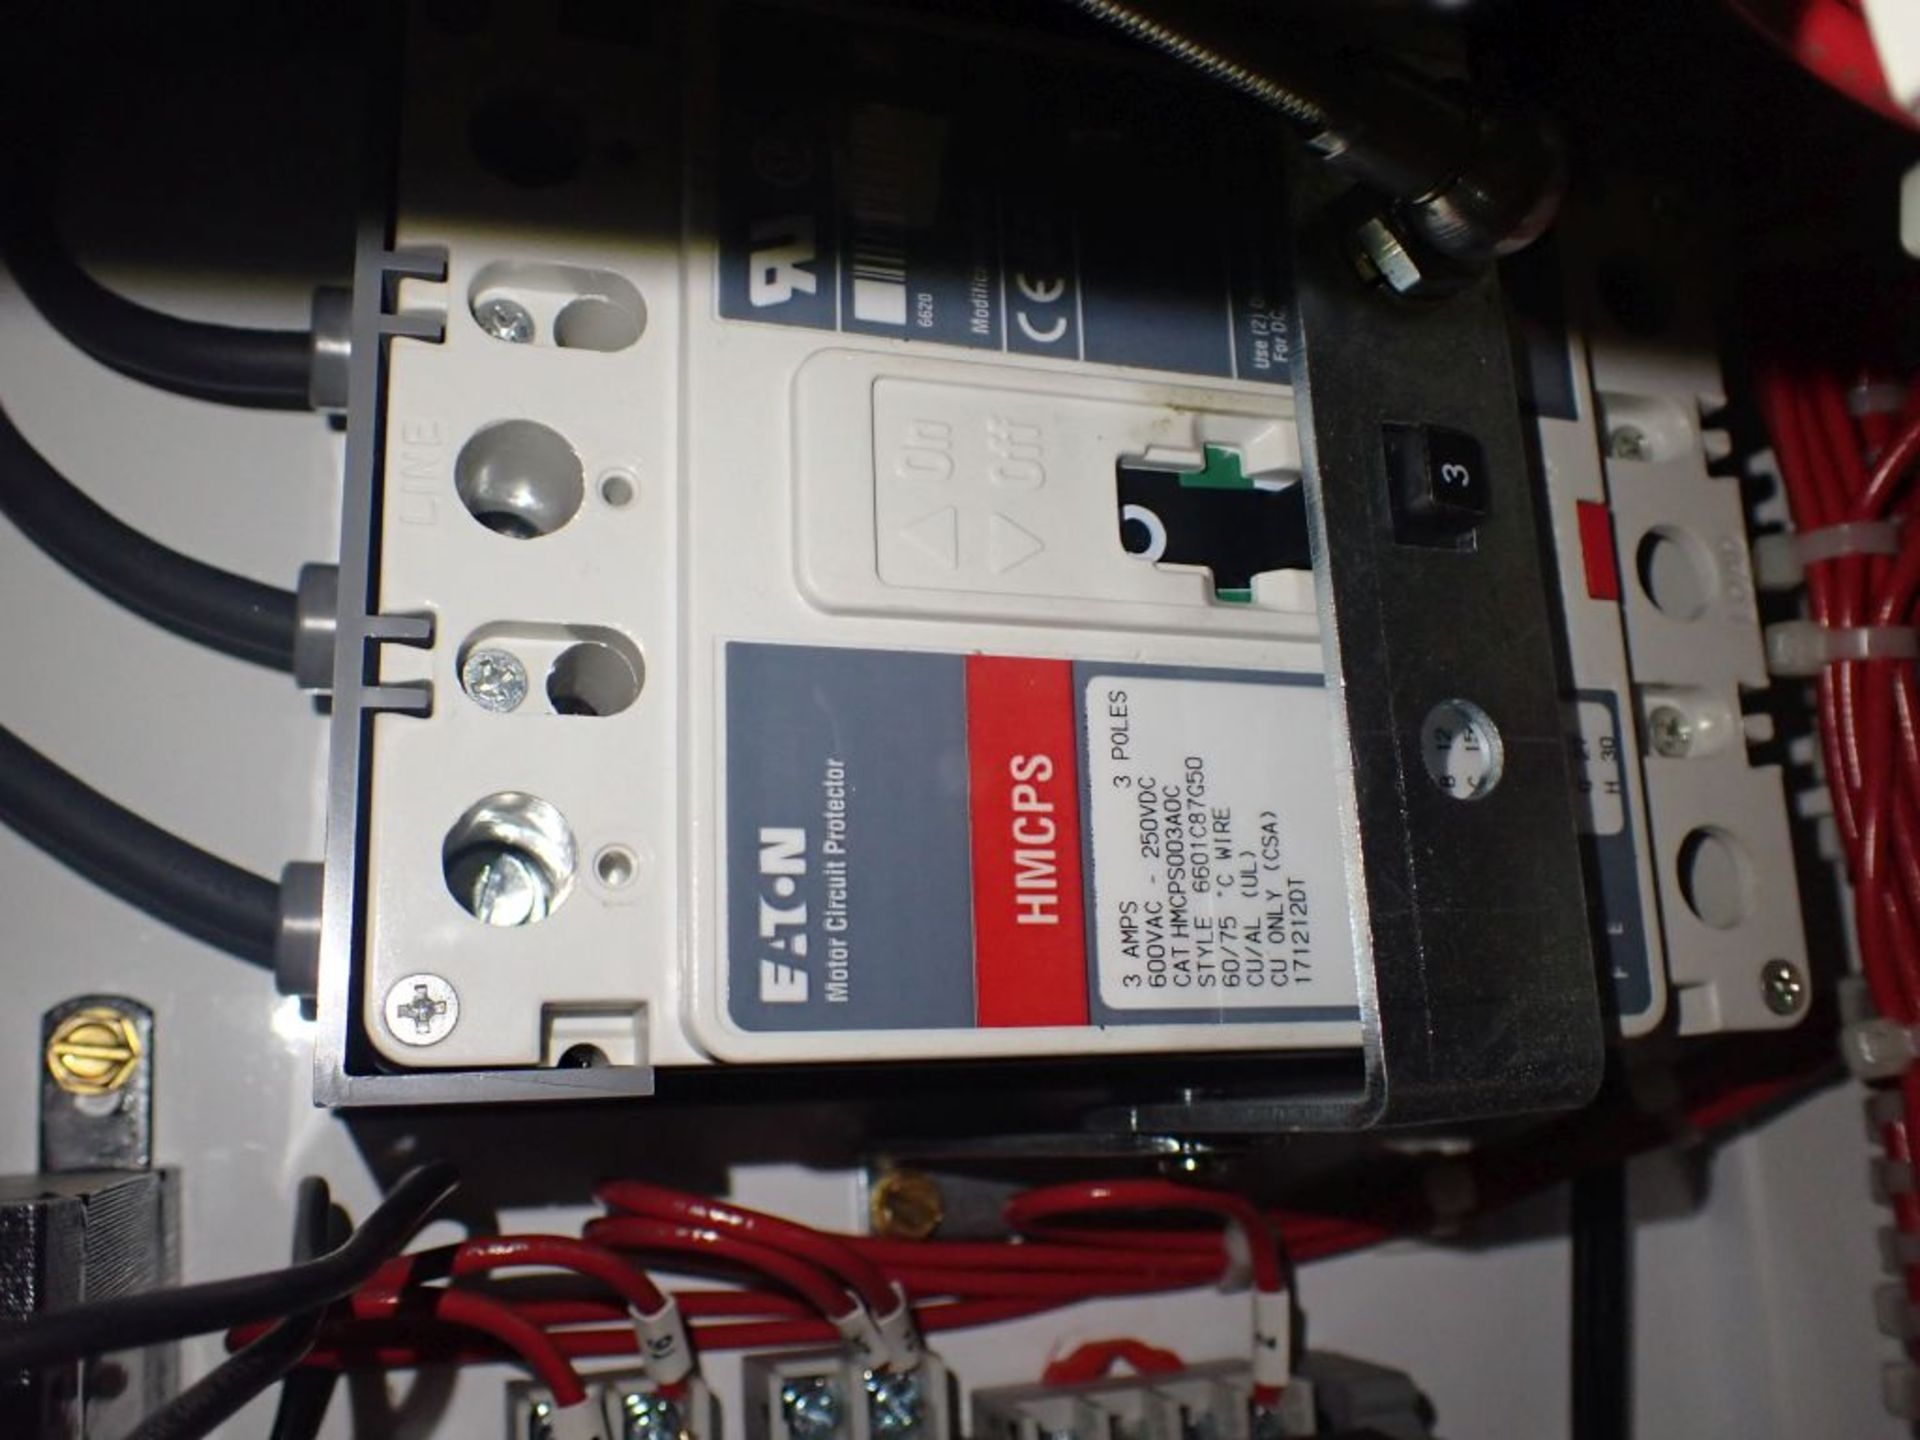 Eaton Freedom Flashgard Motor Control Center w/Components | (5) F206-15A-10HP; (4) F206-30A-10HP; ( - Image 73 of 84